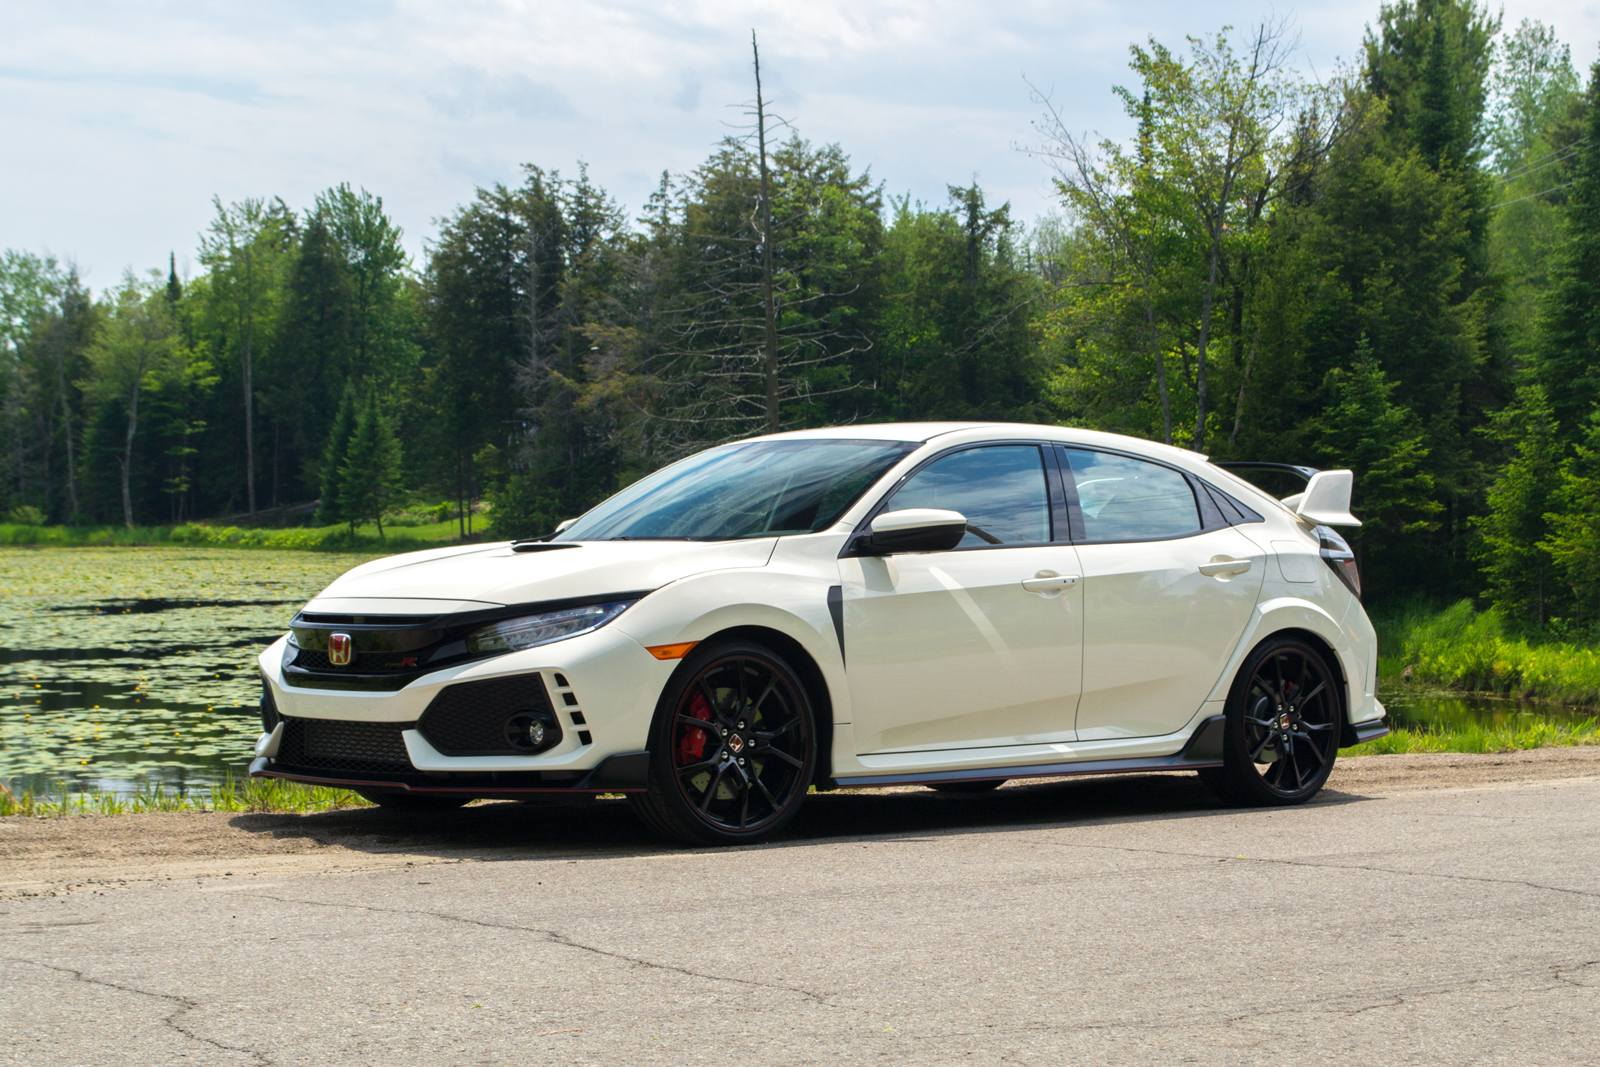 2017 Honda Civic Type R Colpitts 1600x1067 002